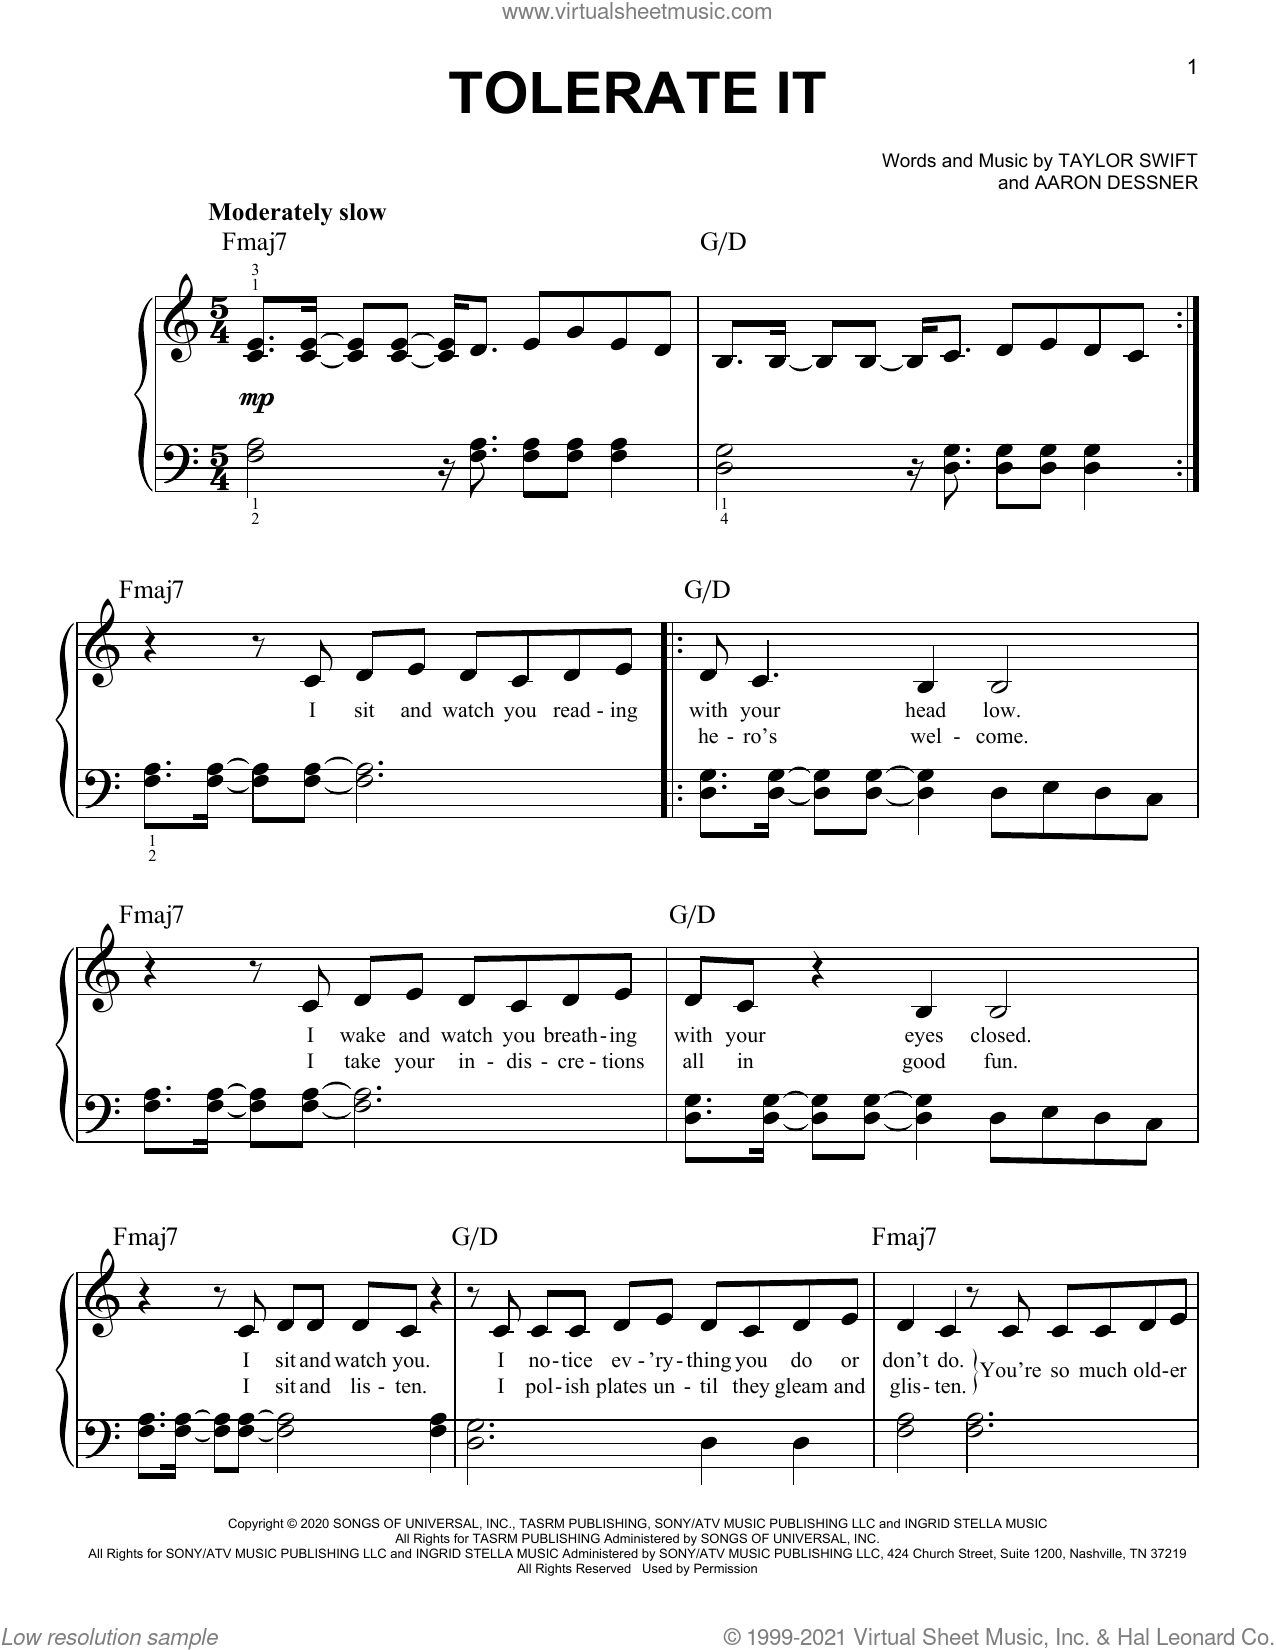 tolerate it sheet music for piano solo by Taylor Swift and Aaron Dessner, easy skill level